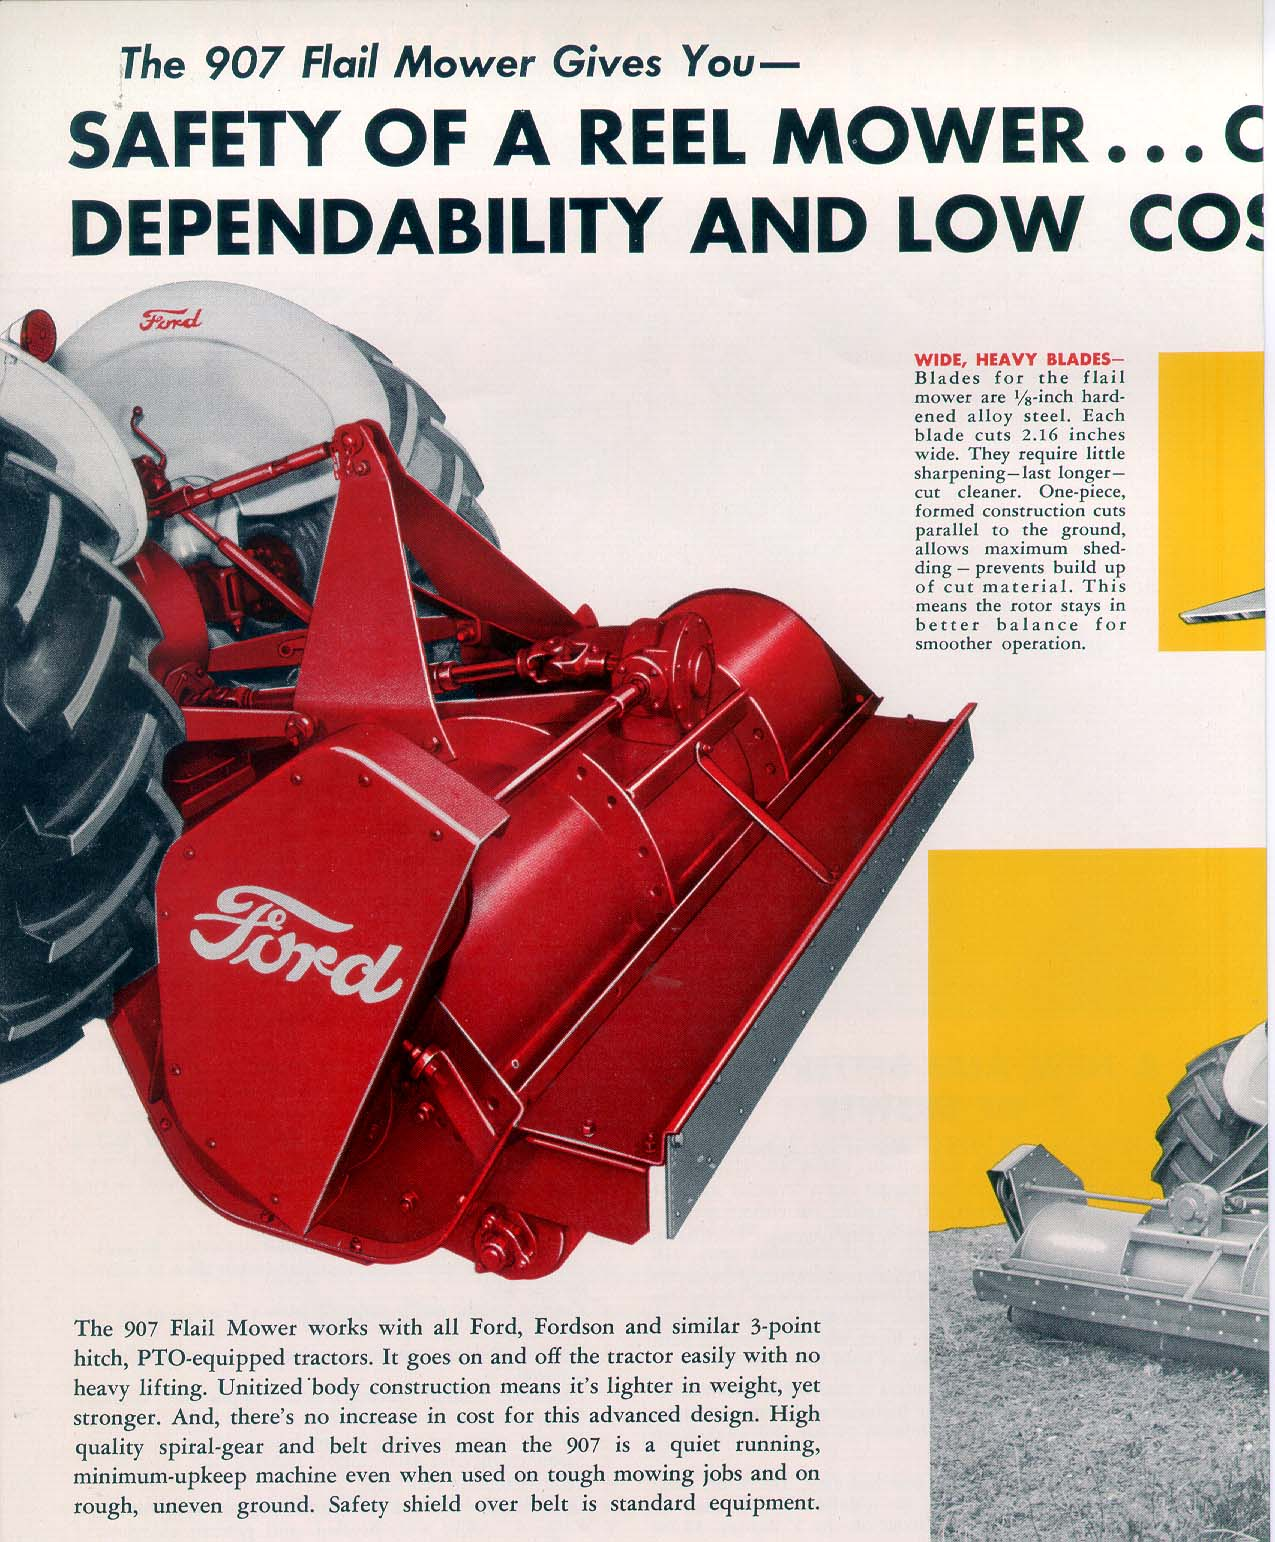 Ford 907 Flail Mower - dealer ad brochure